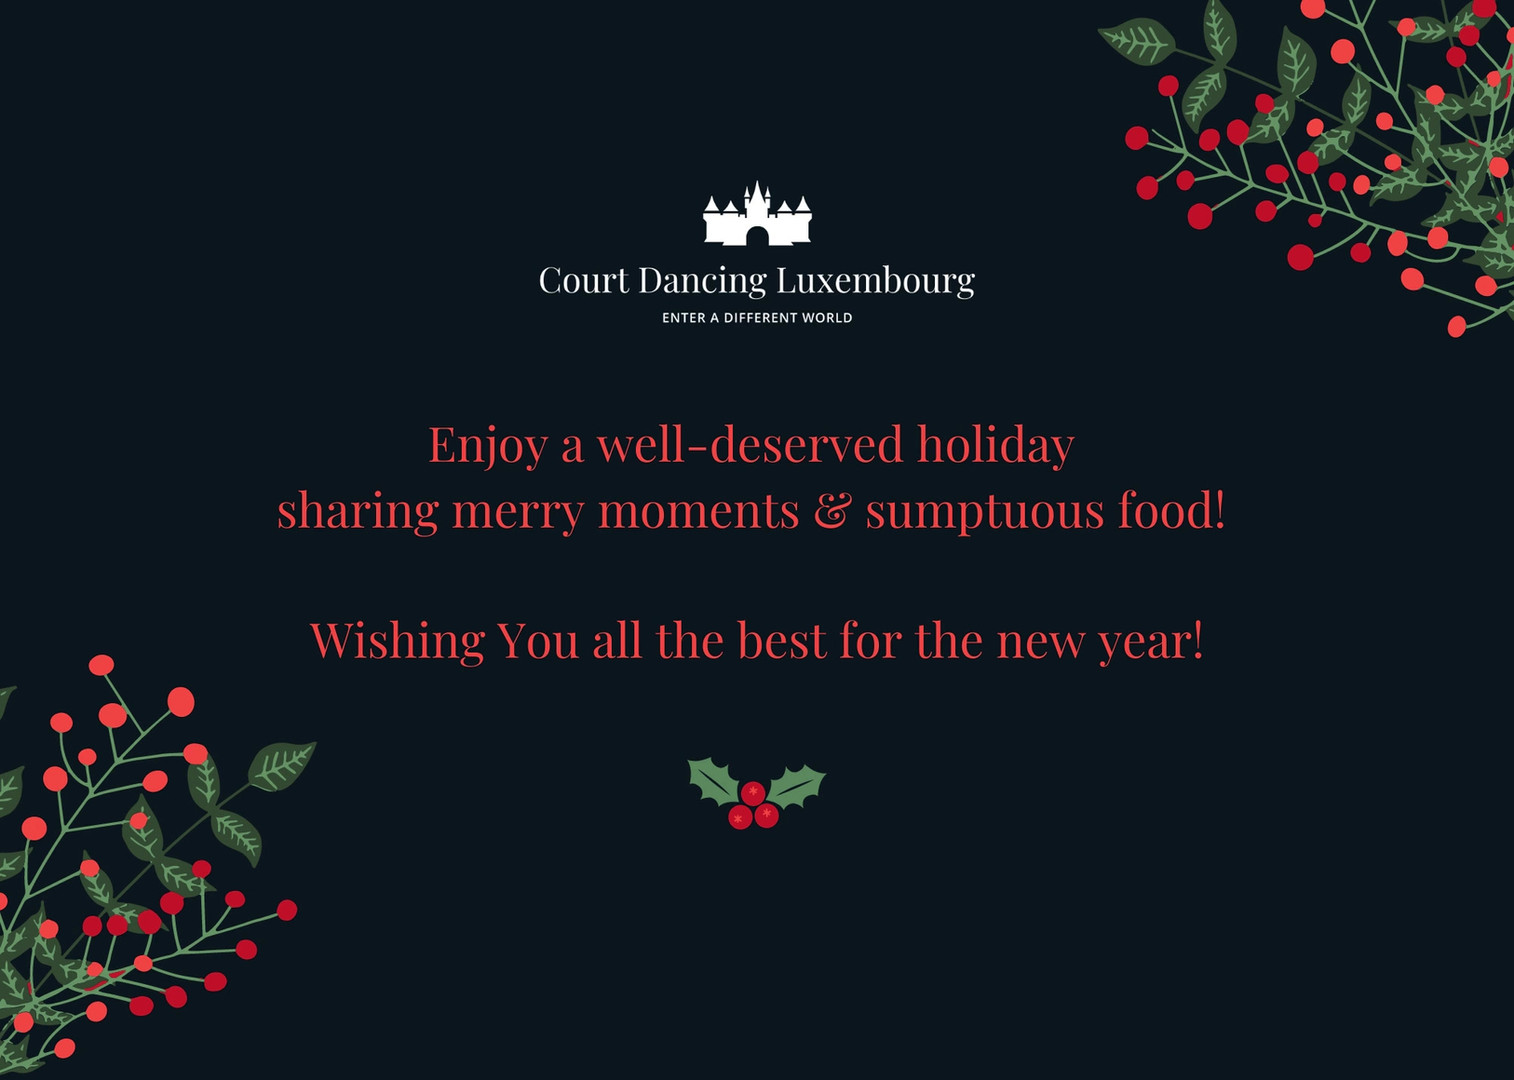 Court Dancing Luxembourg Holidays Card.m